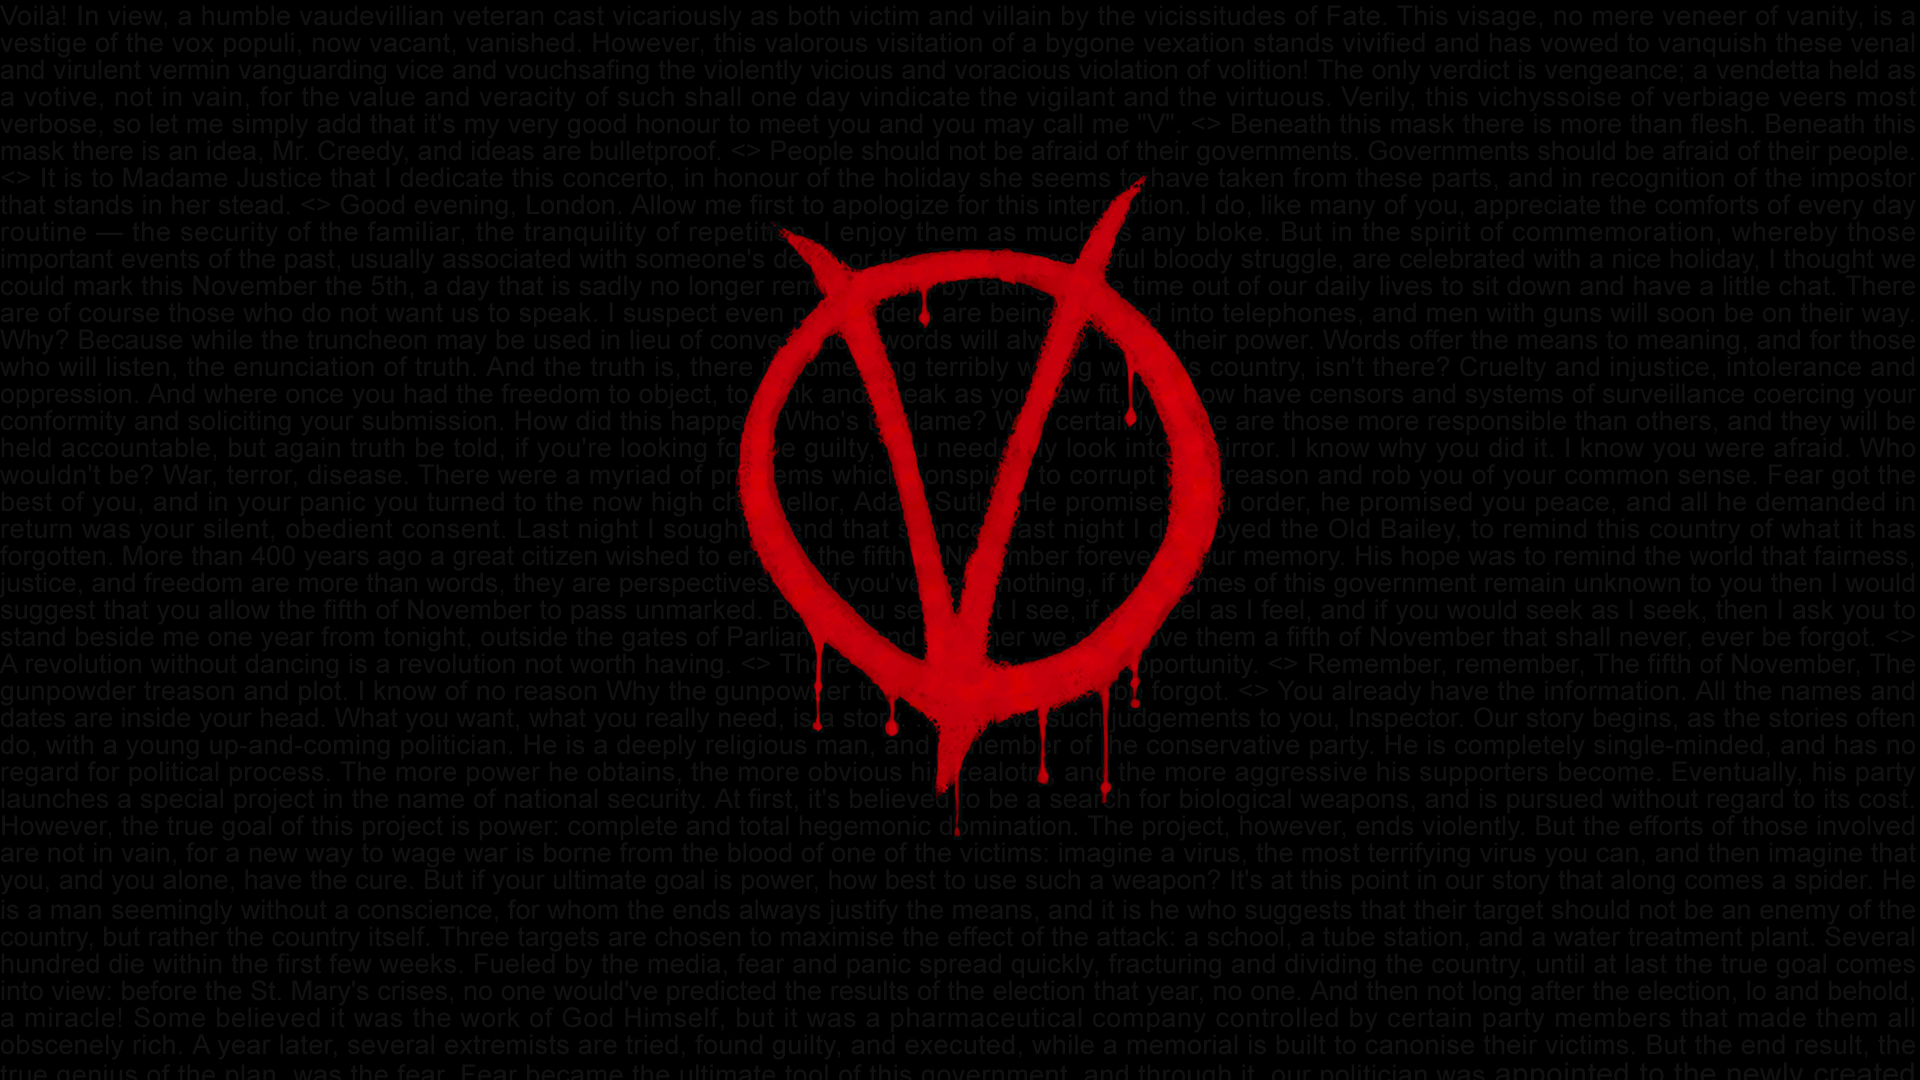 V For Vendetta Quotes HD Wallpaper 1920x1080 By Swagirr